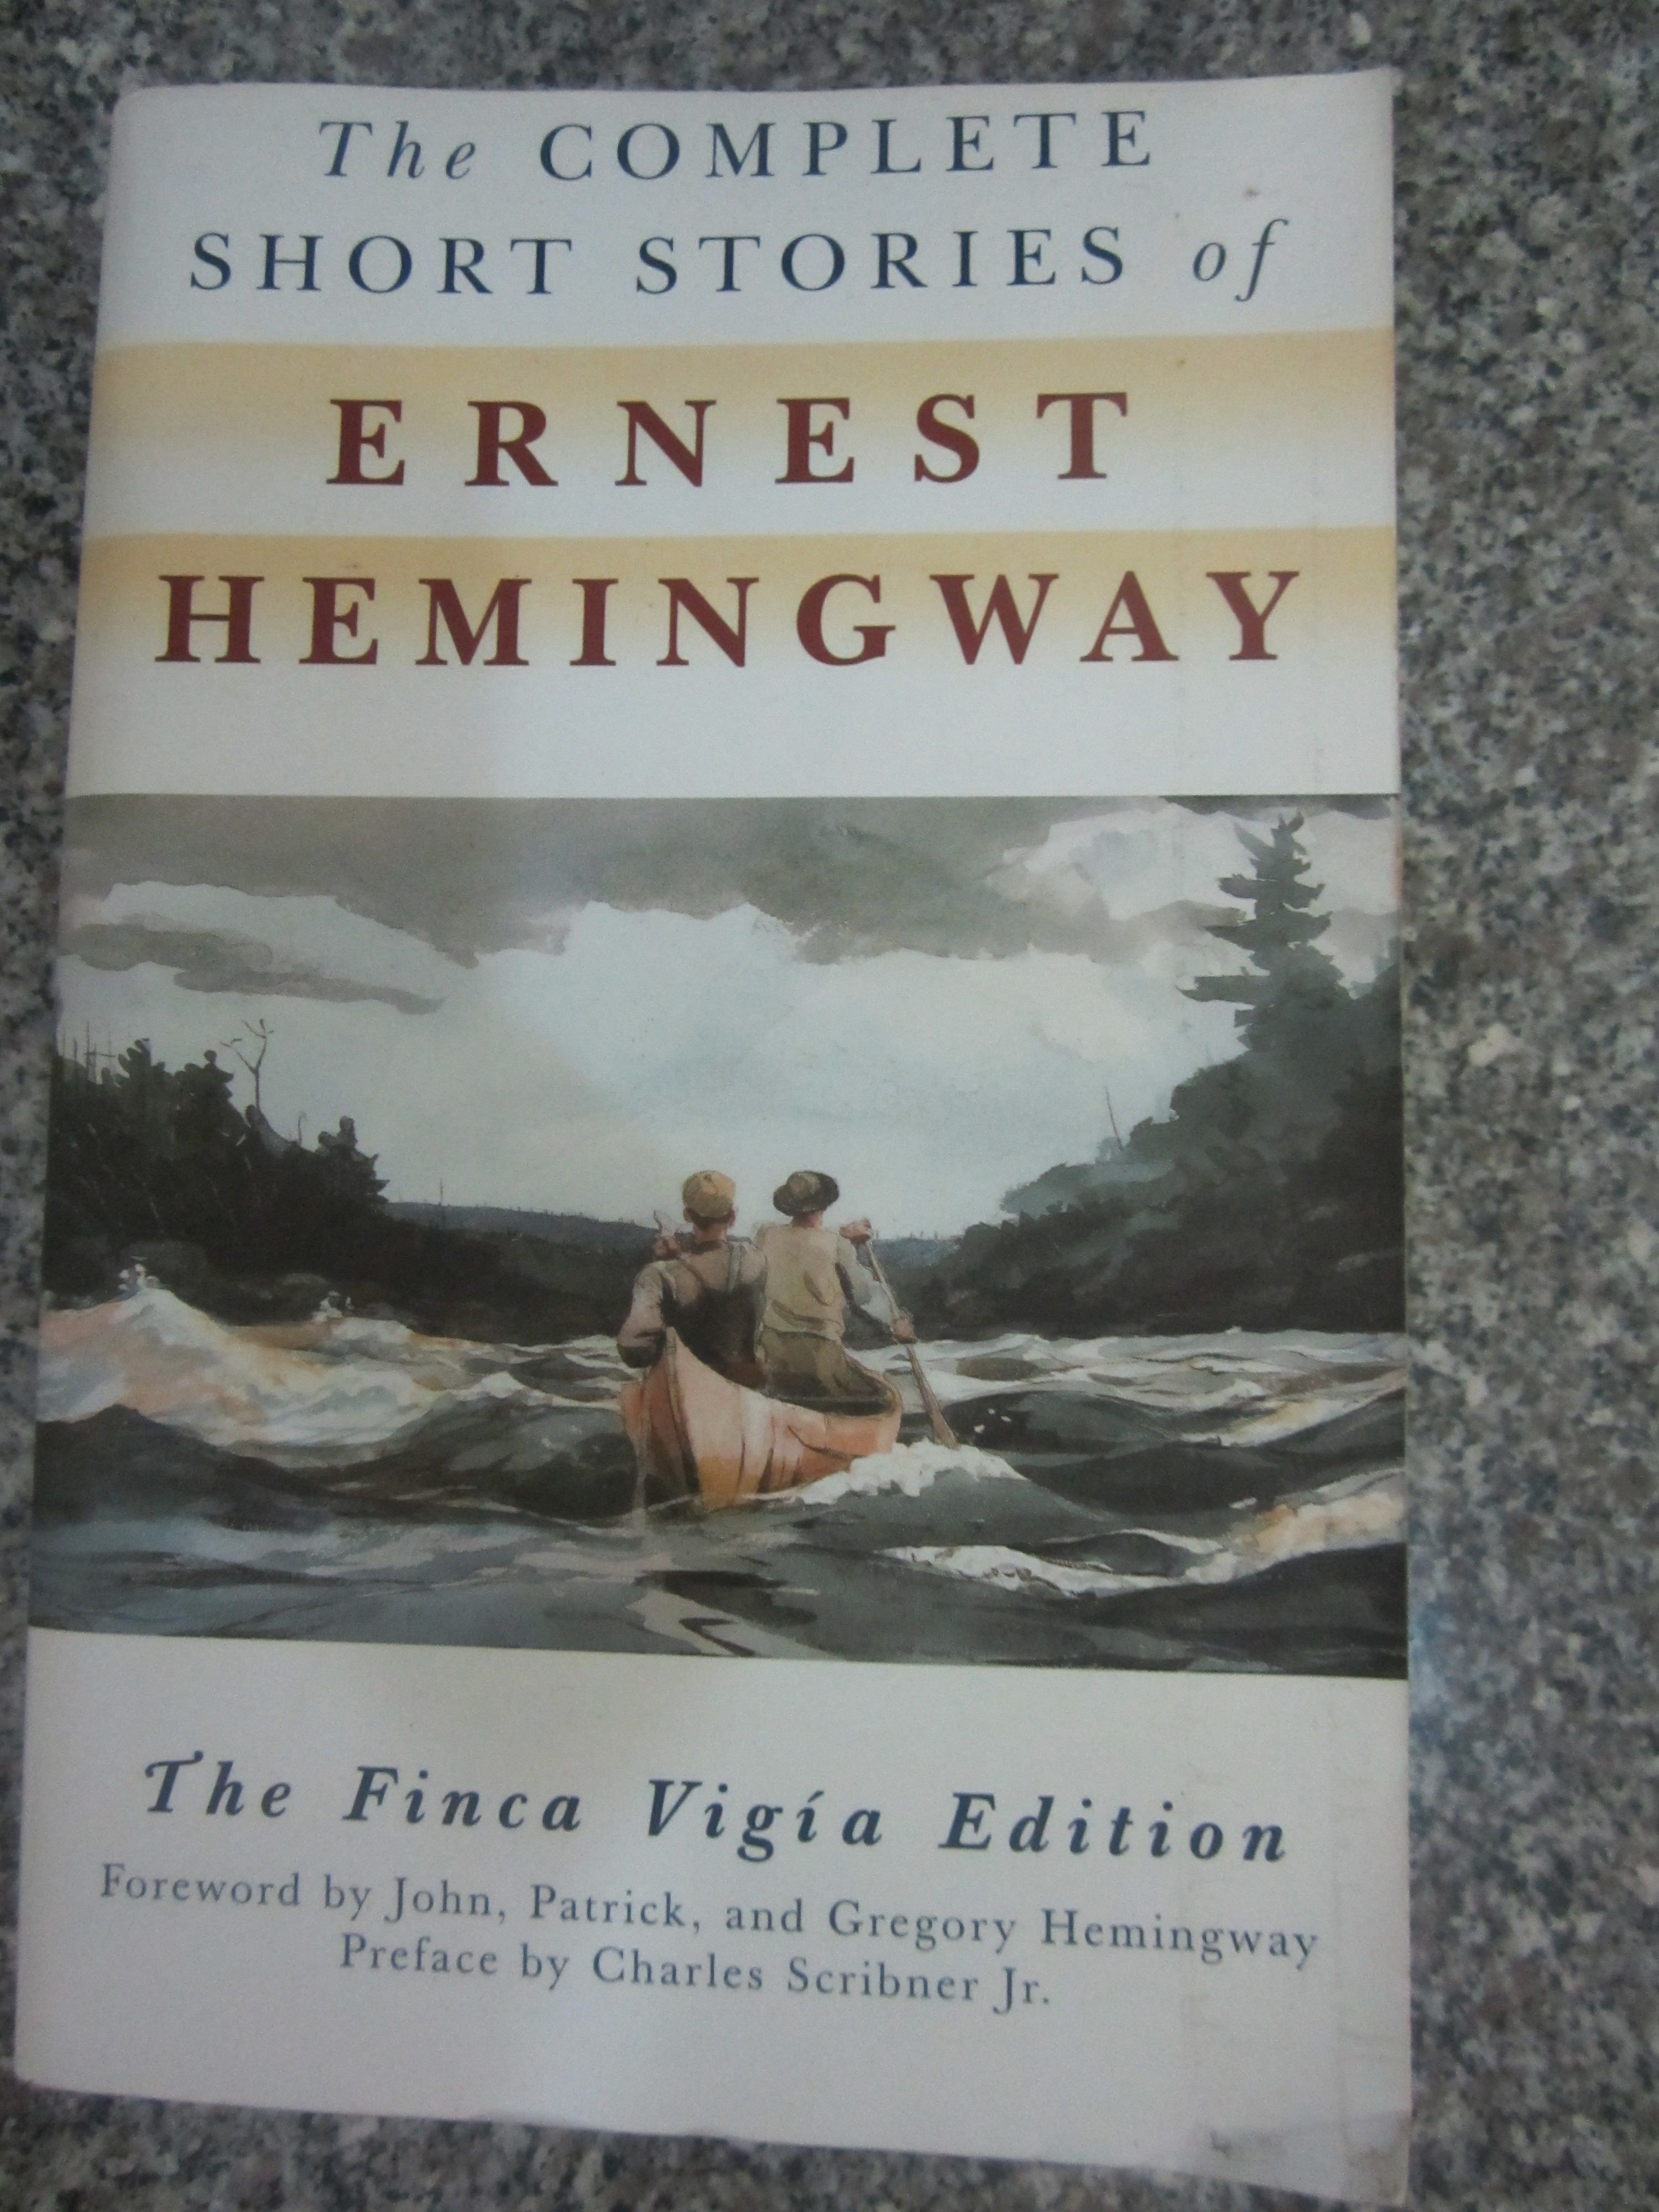 an analysis of the use of repressive hypothesis in the short story indian camp by ernest hemingway Las casas was so horrified by the wholesale massacre he witnessed that he dedicated his life to protecting the indian community he wrote a short account of the.